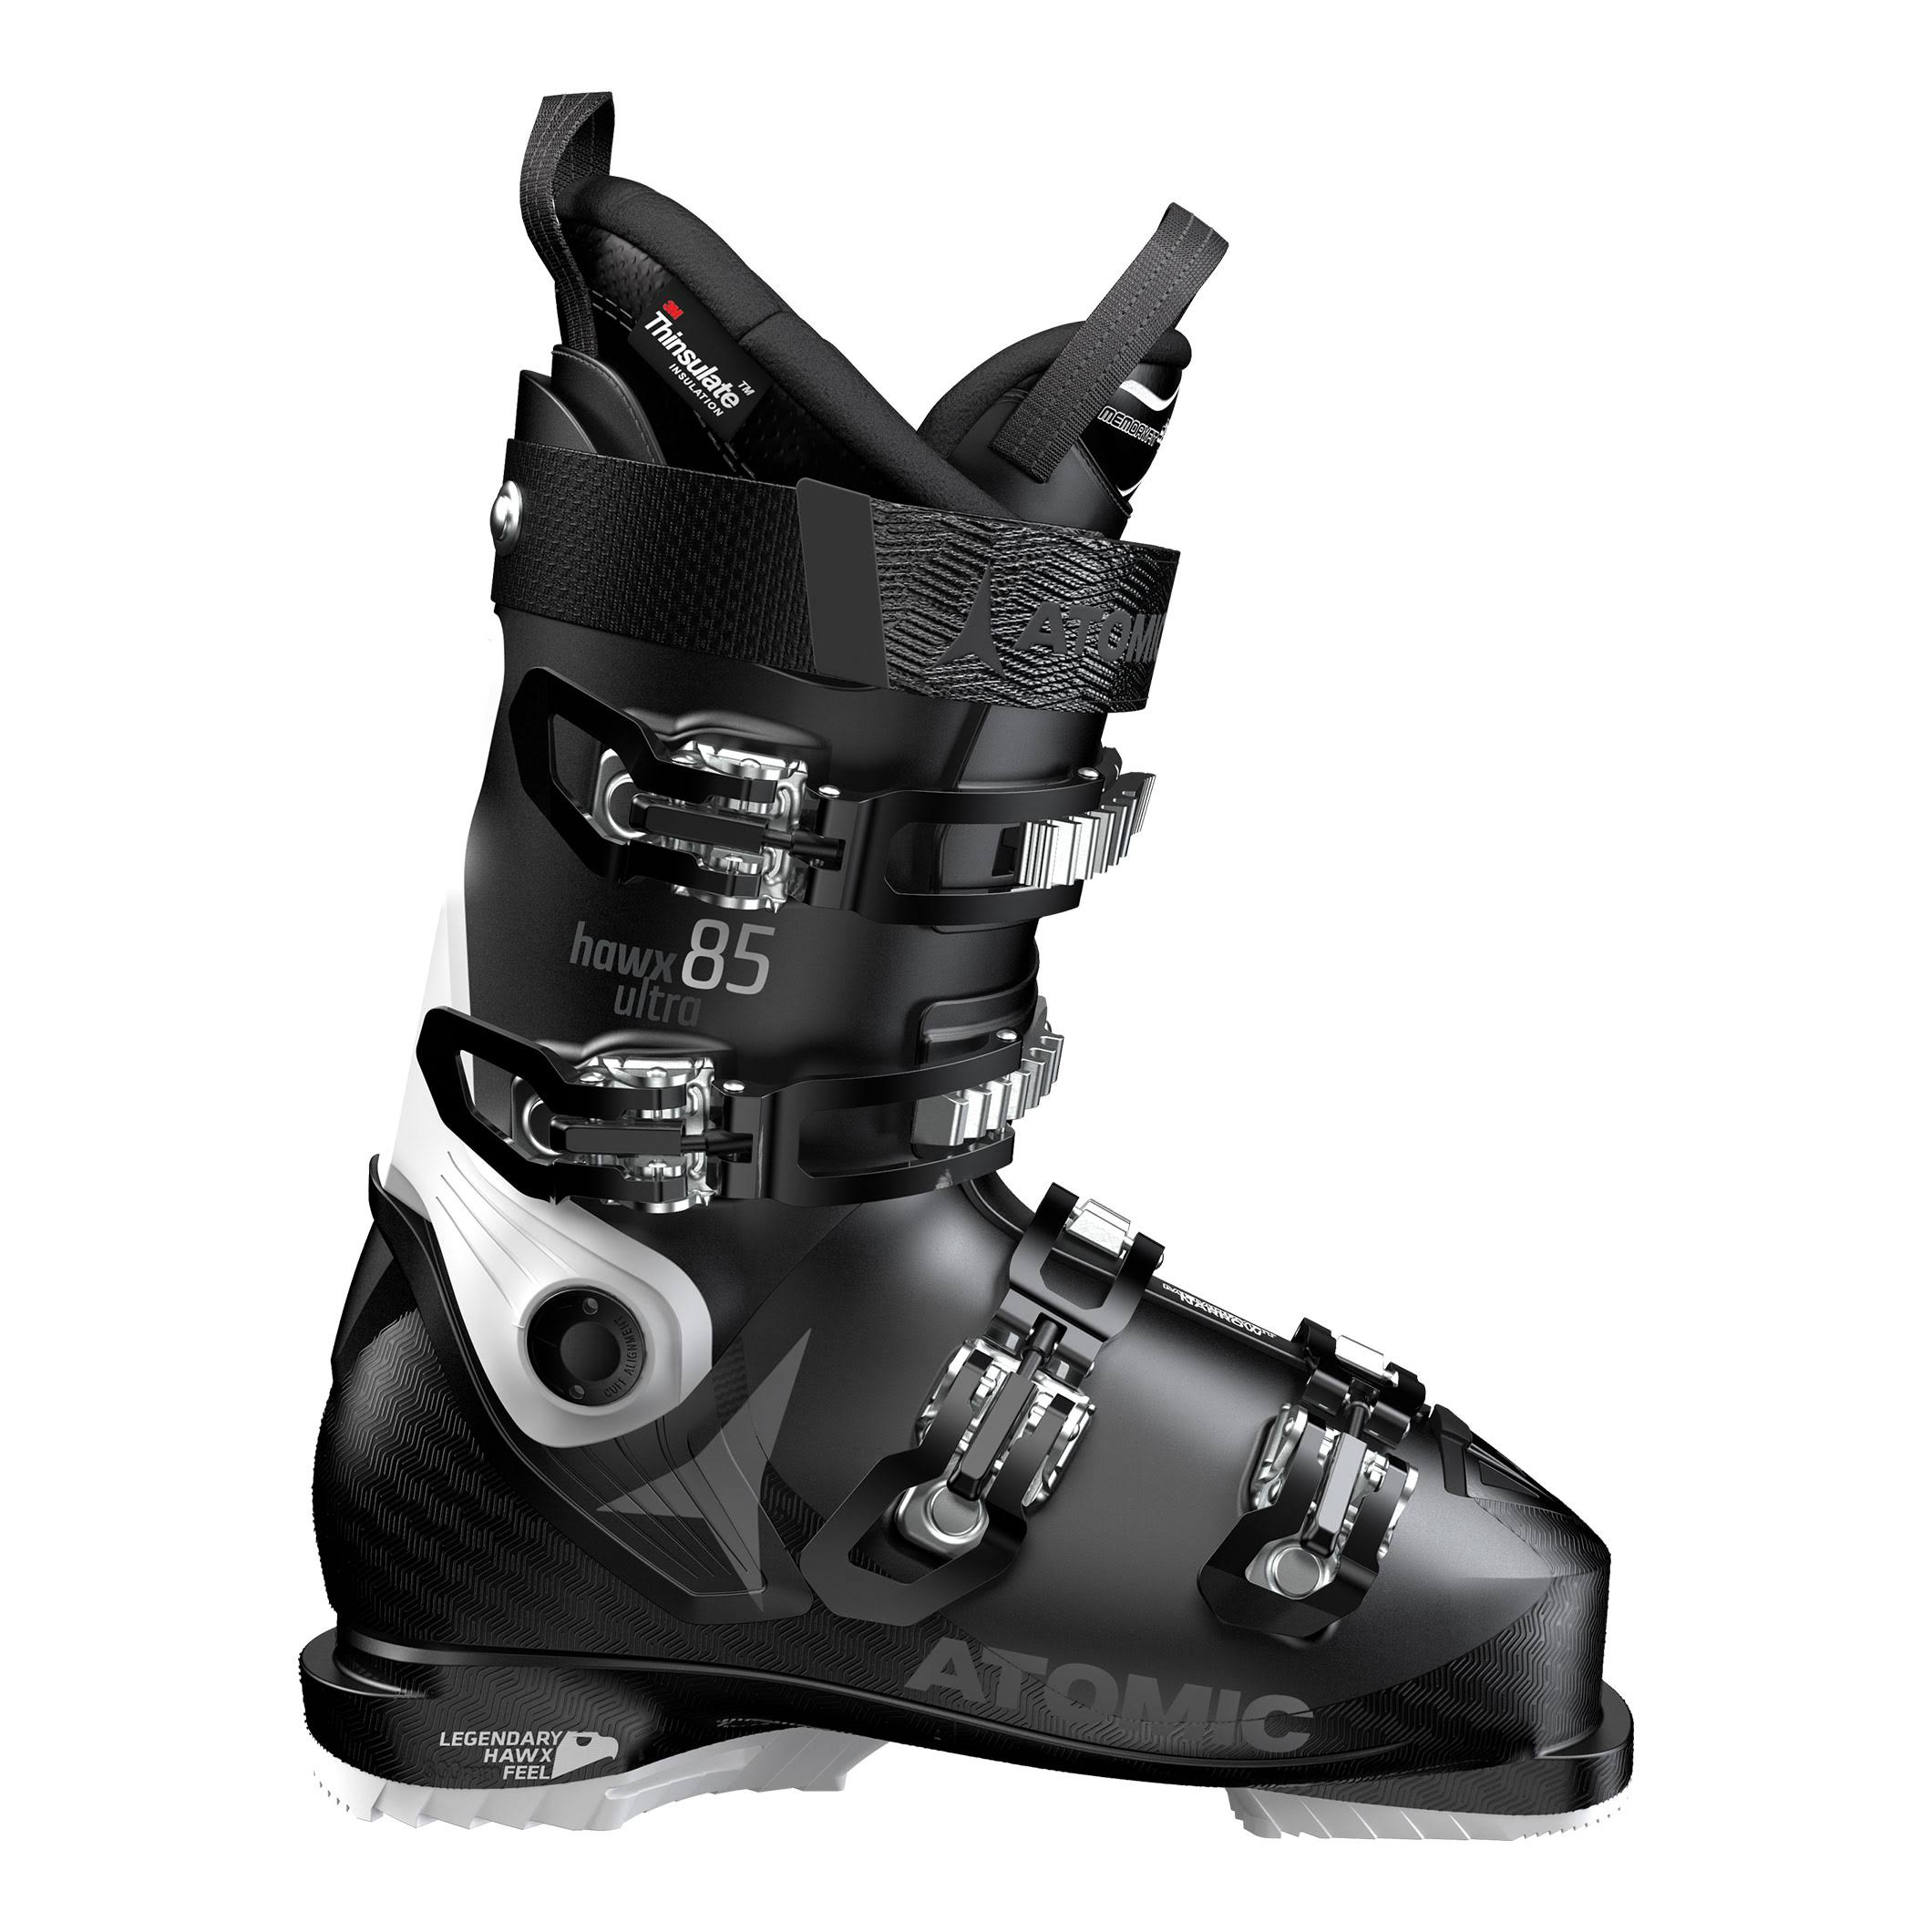 Atomic Women's Hawx Ultra 85W Ski Boots - Black and White, Size 24/24.5